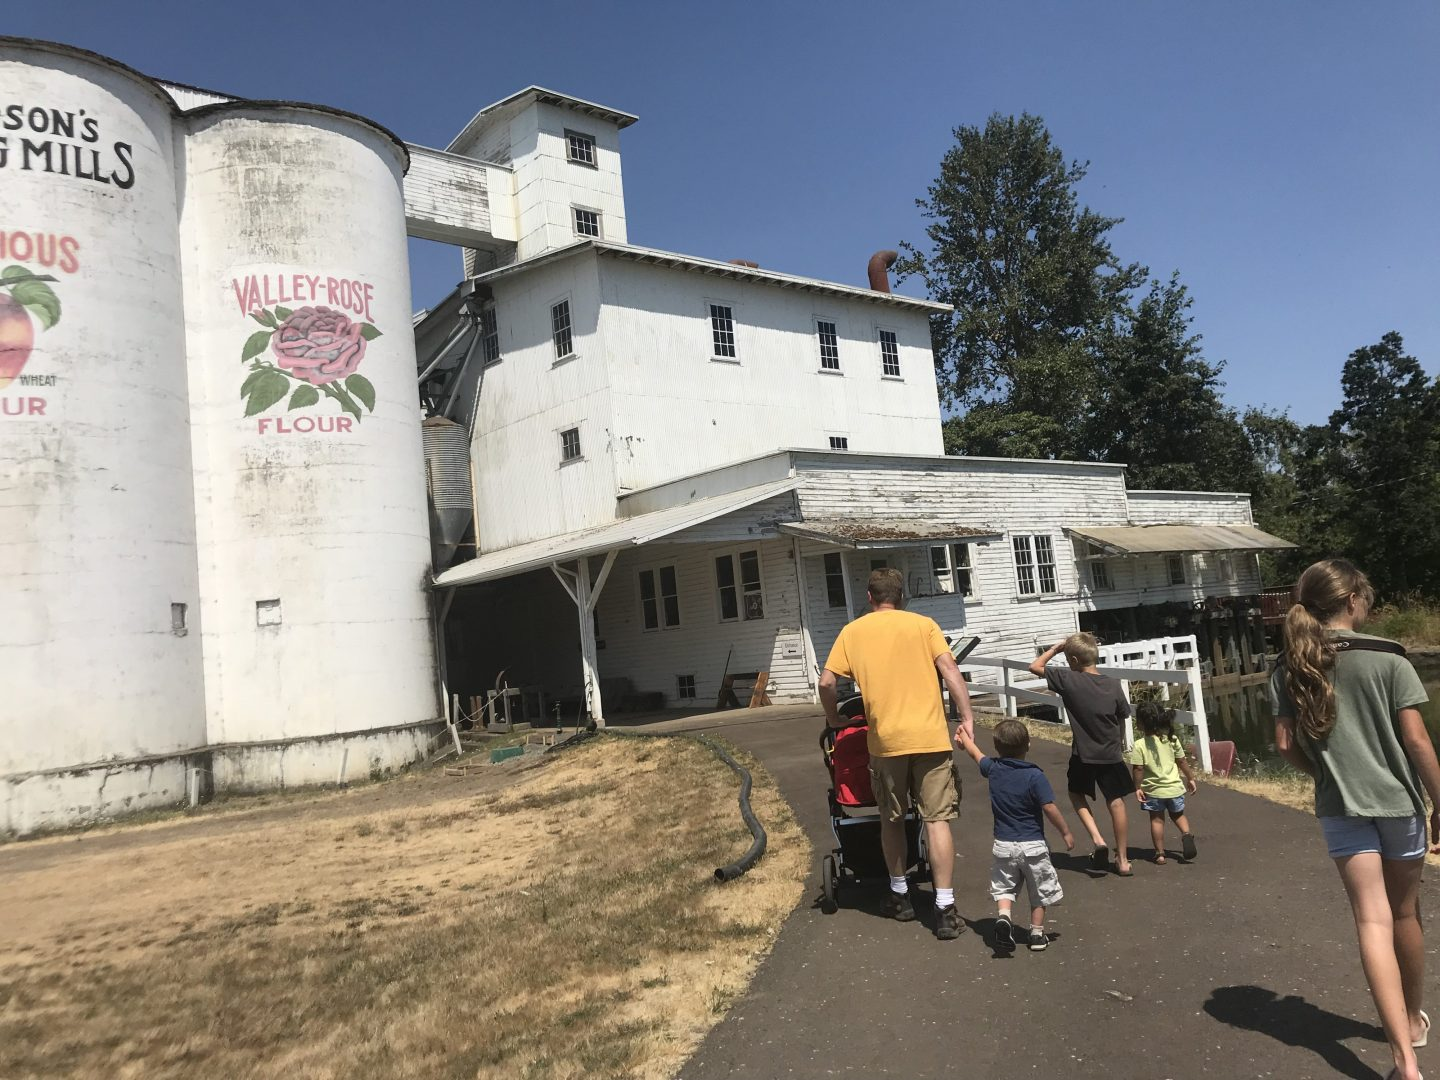 Dad and 6 kids walk to Thompson's Mill state heritage site for a free tour